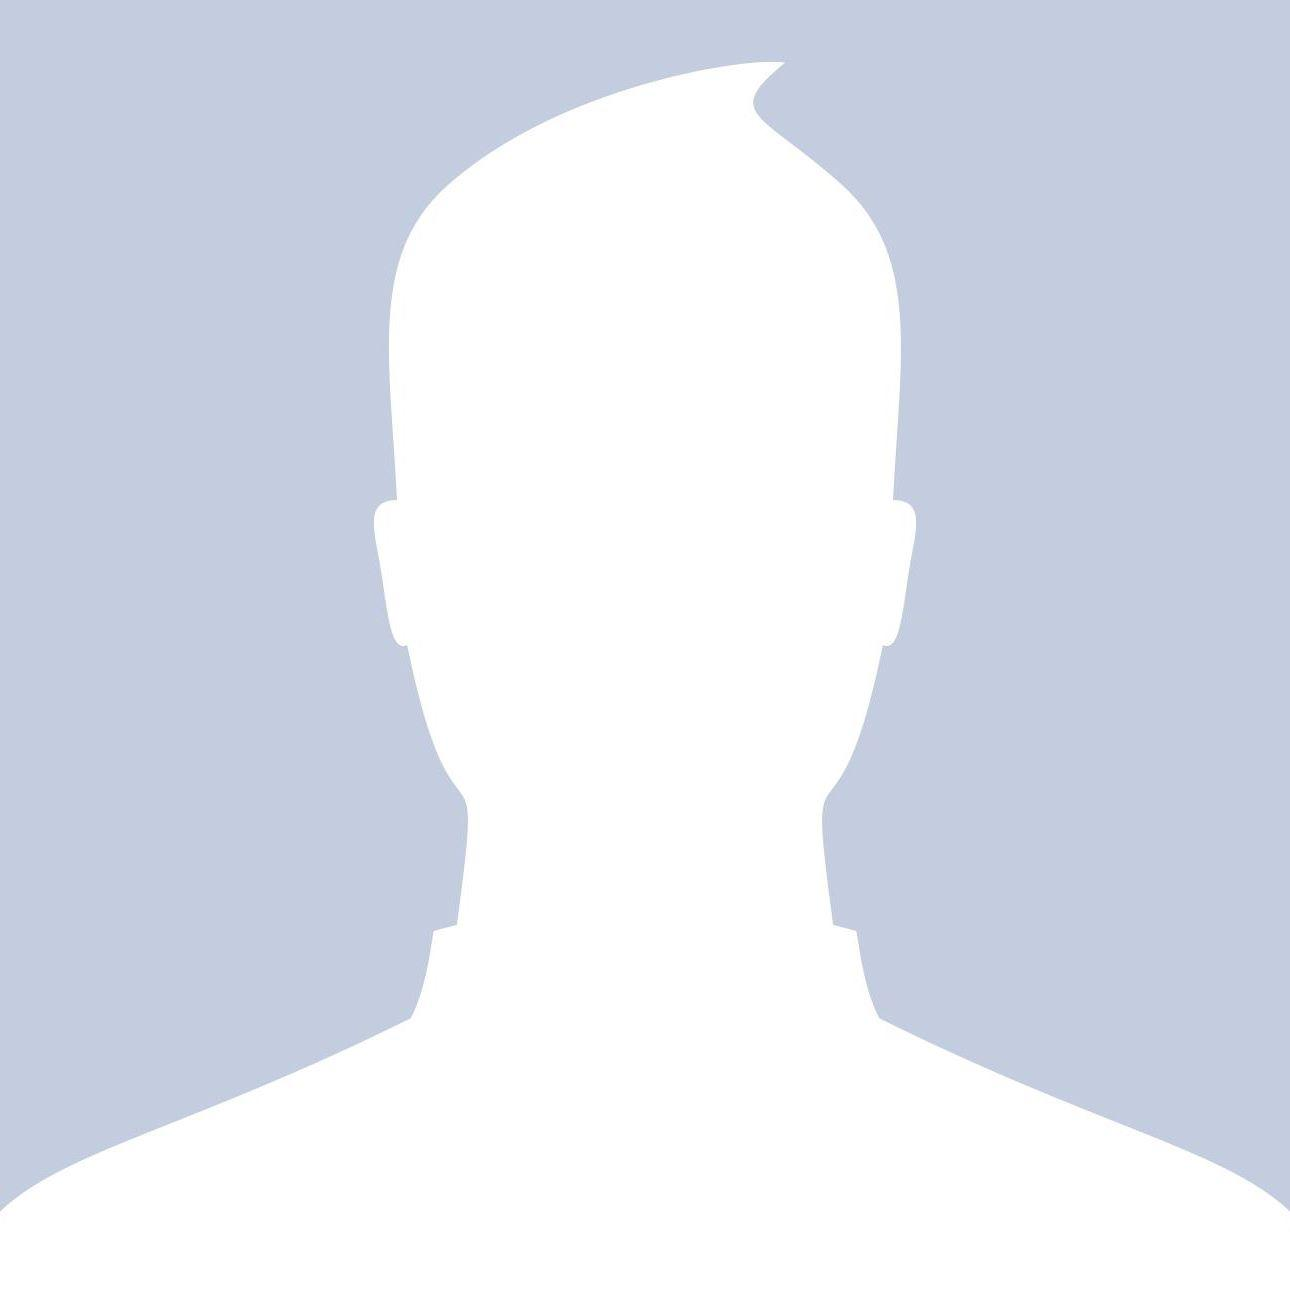 facebook profile picture Blank Template - Imgflip